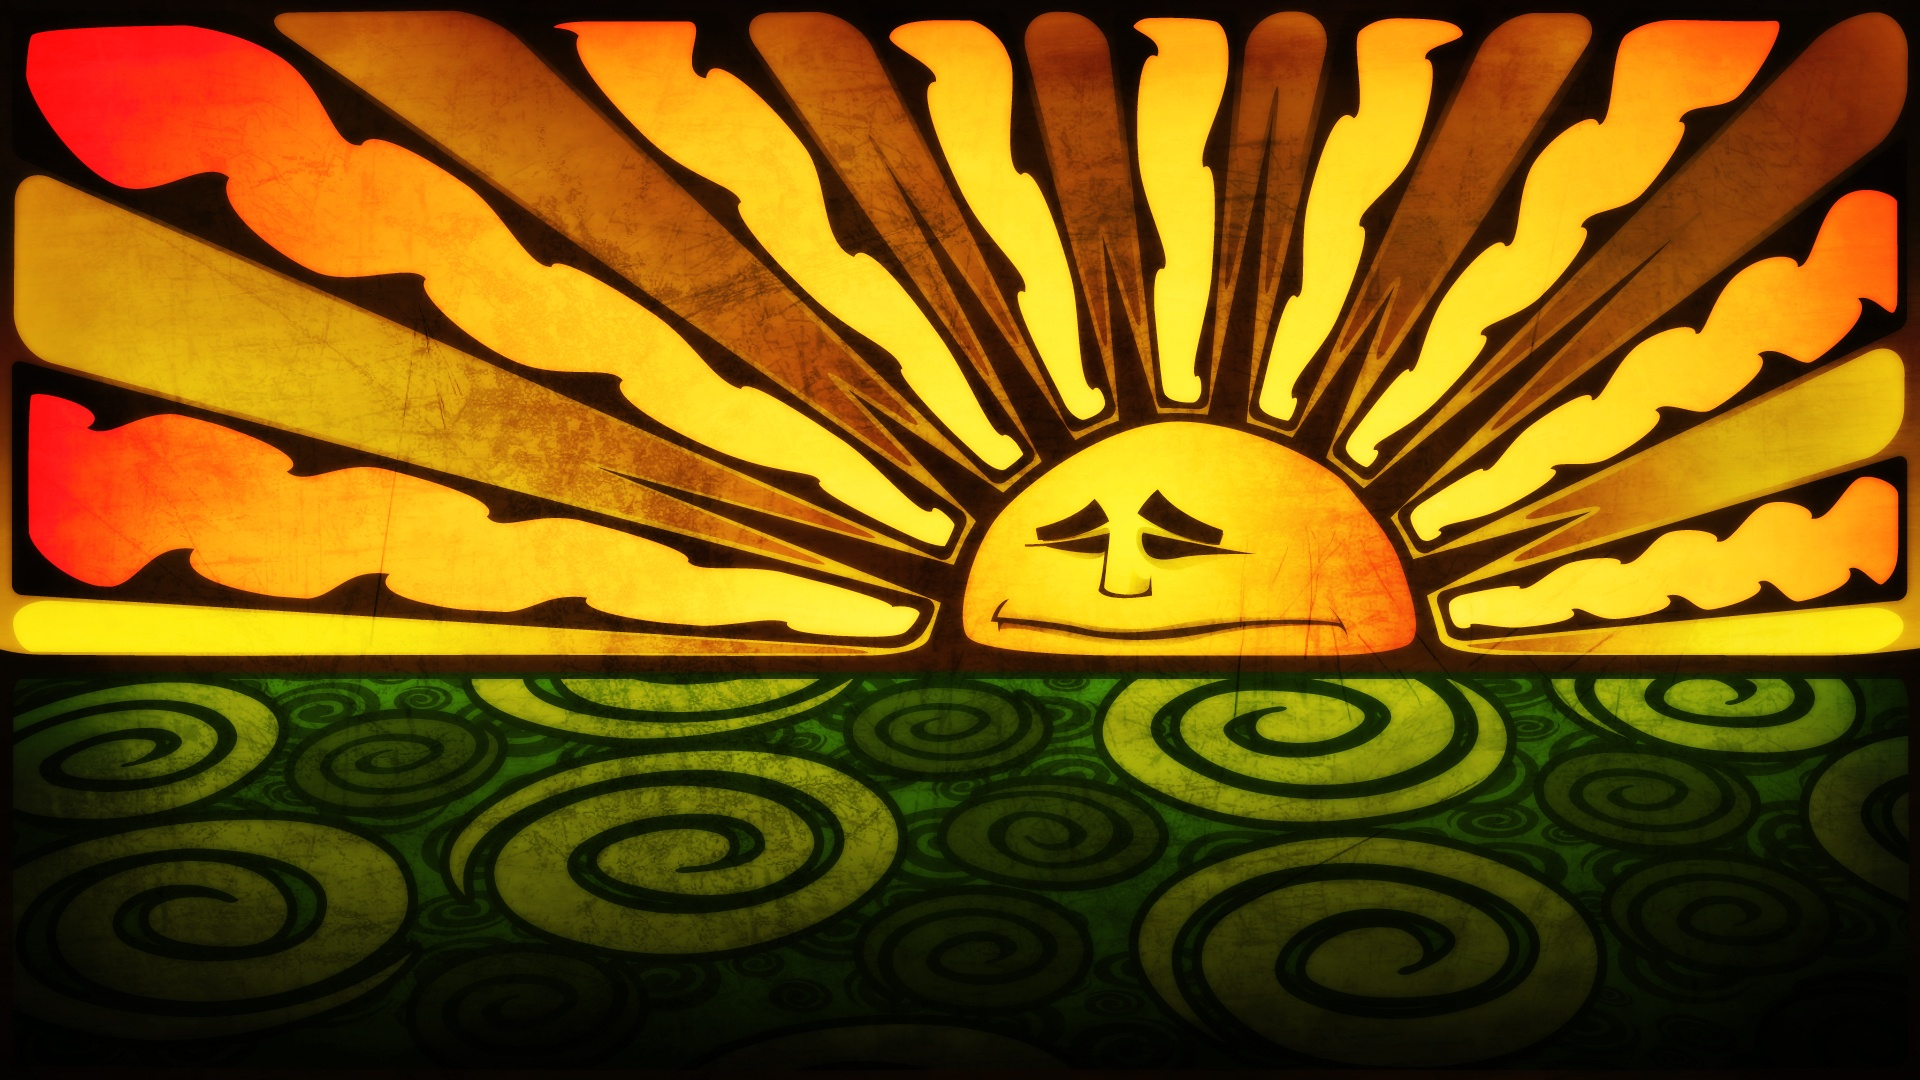 trippy sun desktop wallpaper 50031